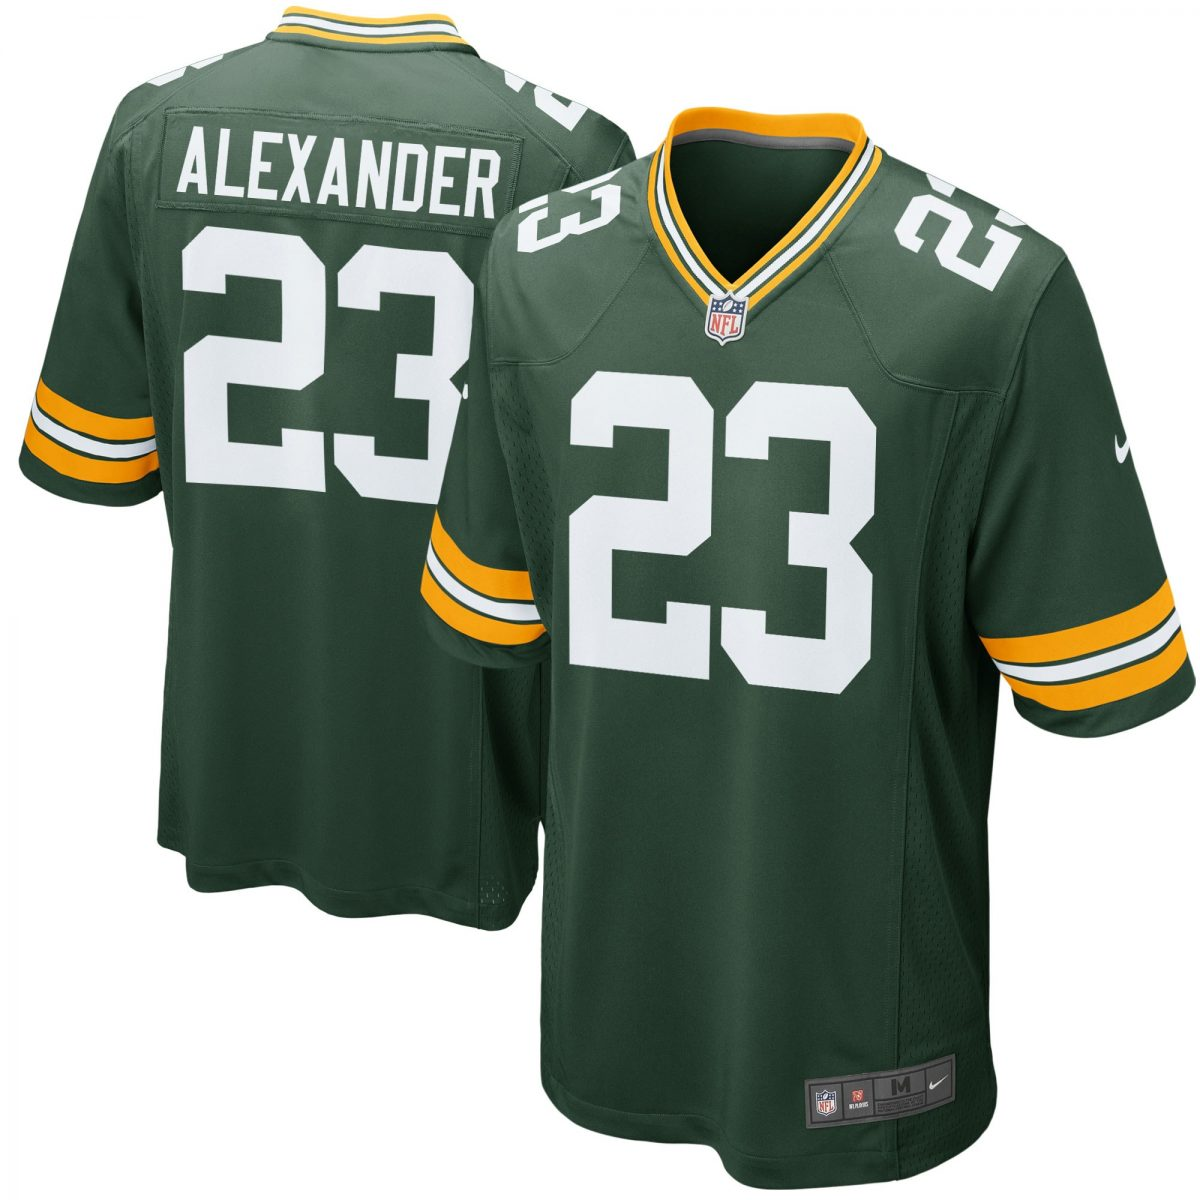 Jamal Adams 202120 Lbs Darron Shelter Wholesale Jerseys Free Shipping 20216 DE